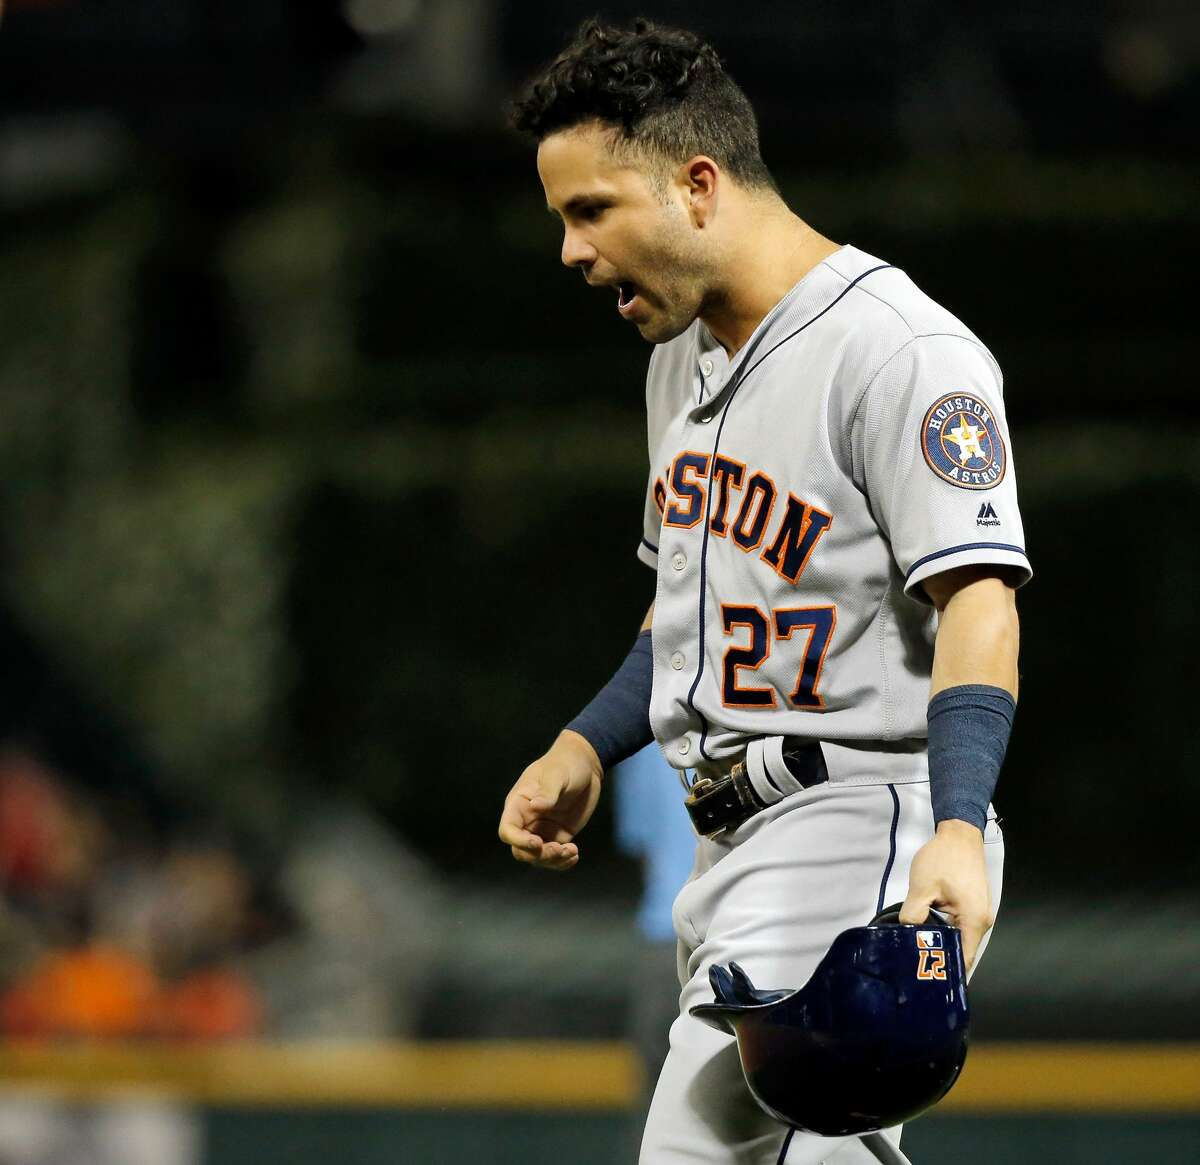 CHICAGO, IL - AUGUST 10: Jose Altuve #27 of the Houston Astros reacts after grounding into a double play against the Chicago White Sox to end the fifth inning at Guaranteed Rate Field on August 10, 2017 in Chicago, Illinois. The Chicago White Sox won 3-2 in eleventh inning. (Photo by Jon Durr/Getty Images)